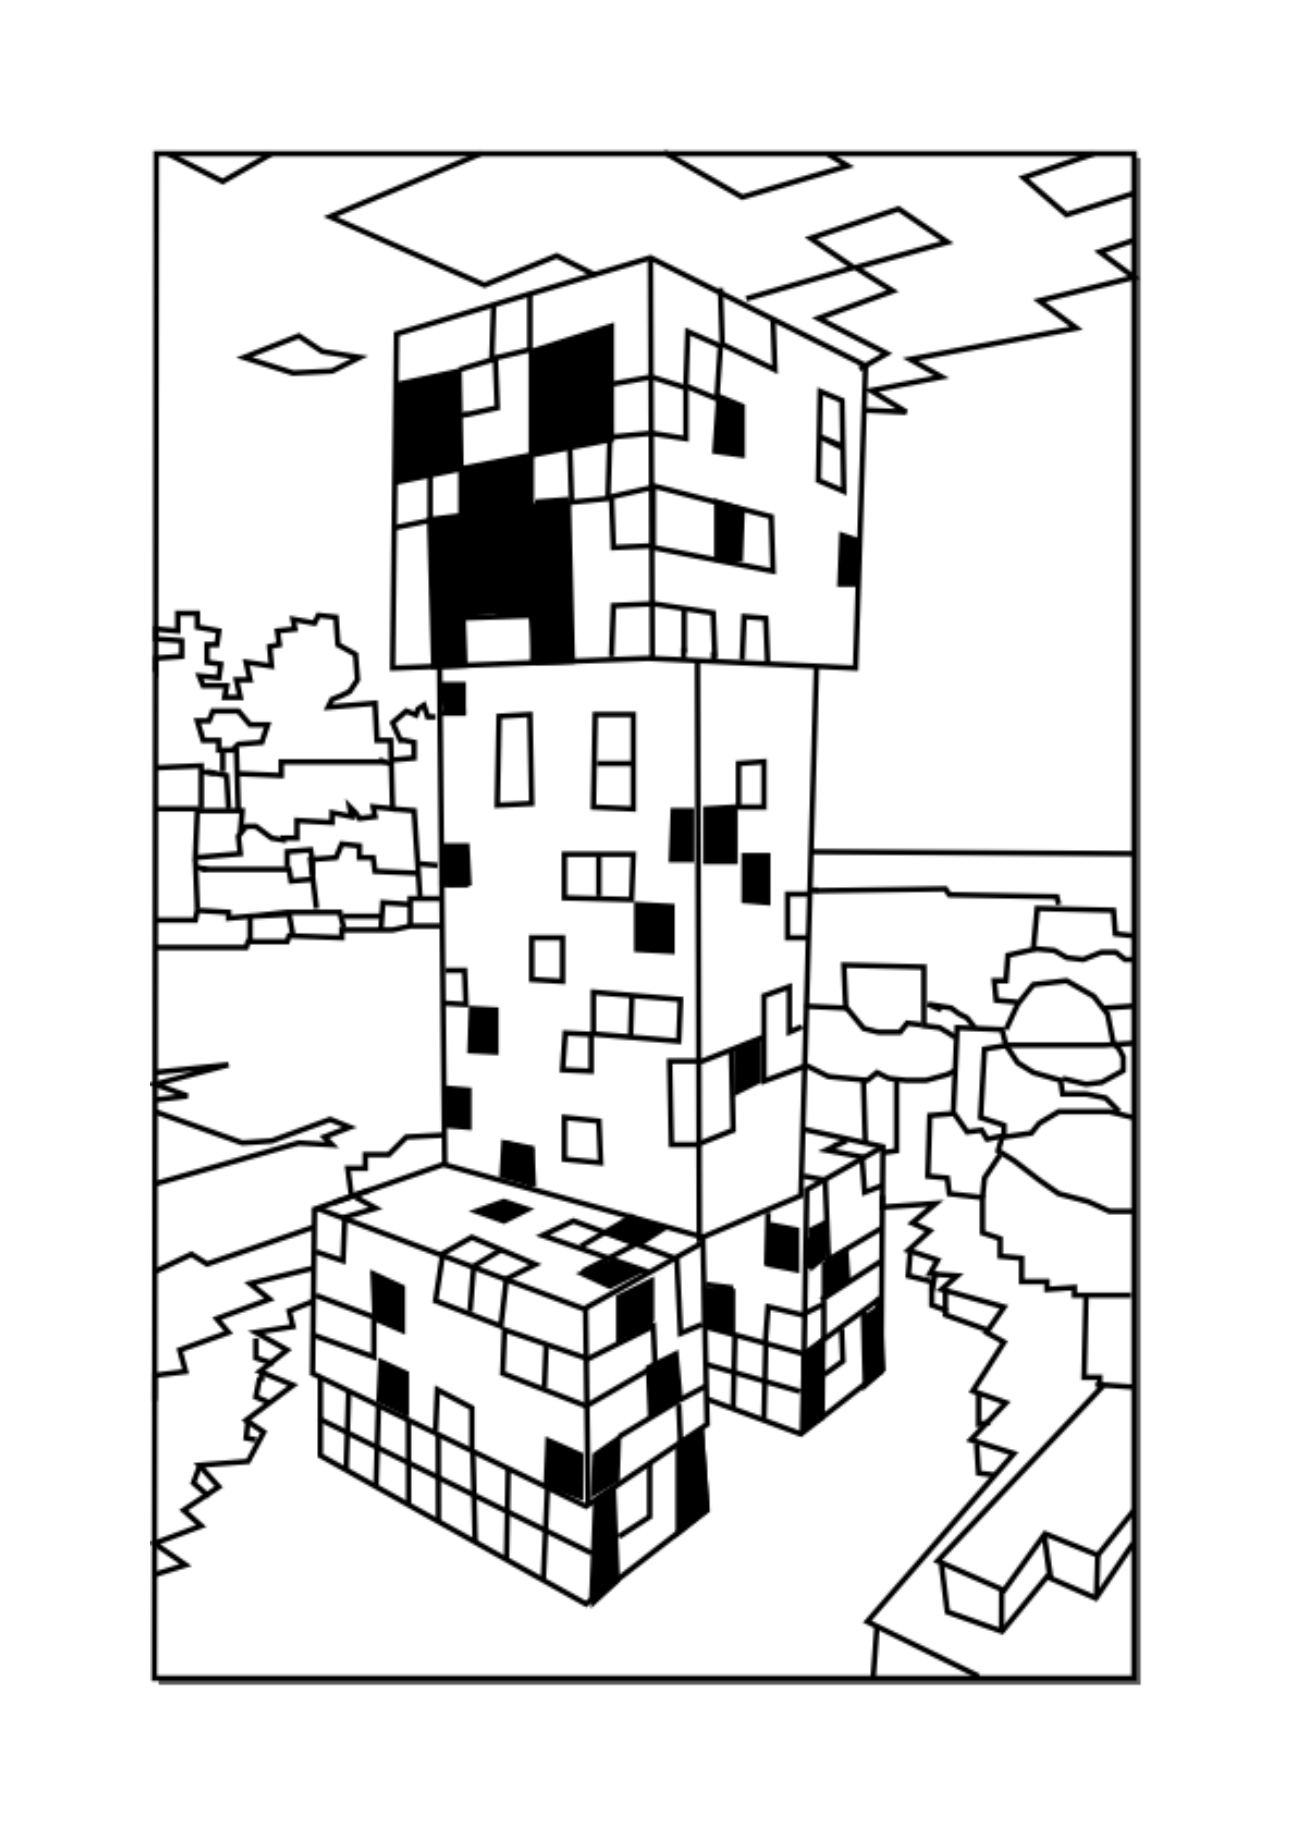 Creeper Minecraft Coloring Page | Minecraft coloring pages, Horse ... | 1832x1295